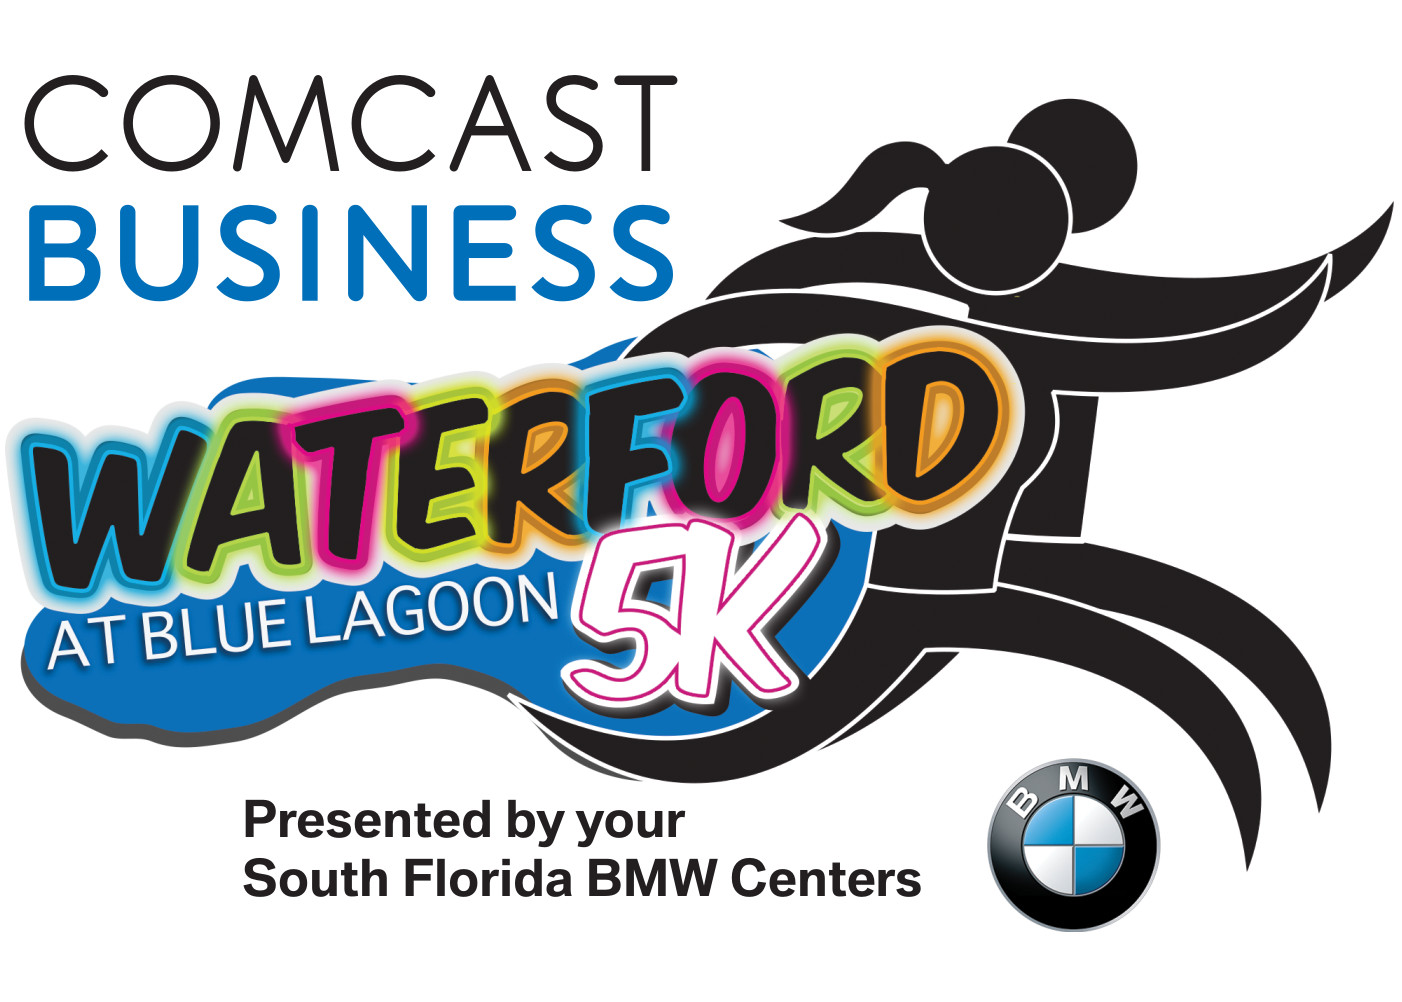 Comcast Business Waterford 5K